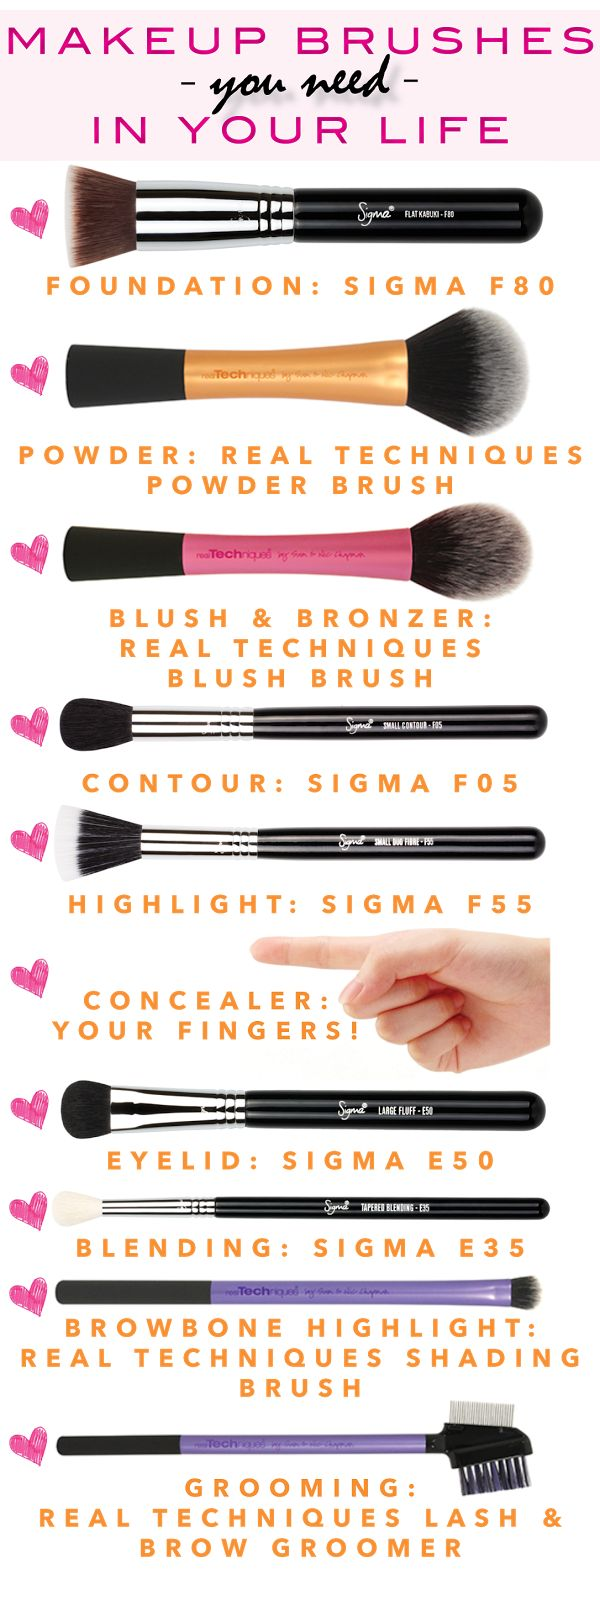 Anne Marie Mitchell | Apply Makeup Like a Pro: Makeup Brushes You Need in Your Life